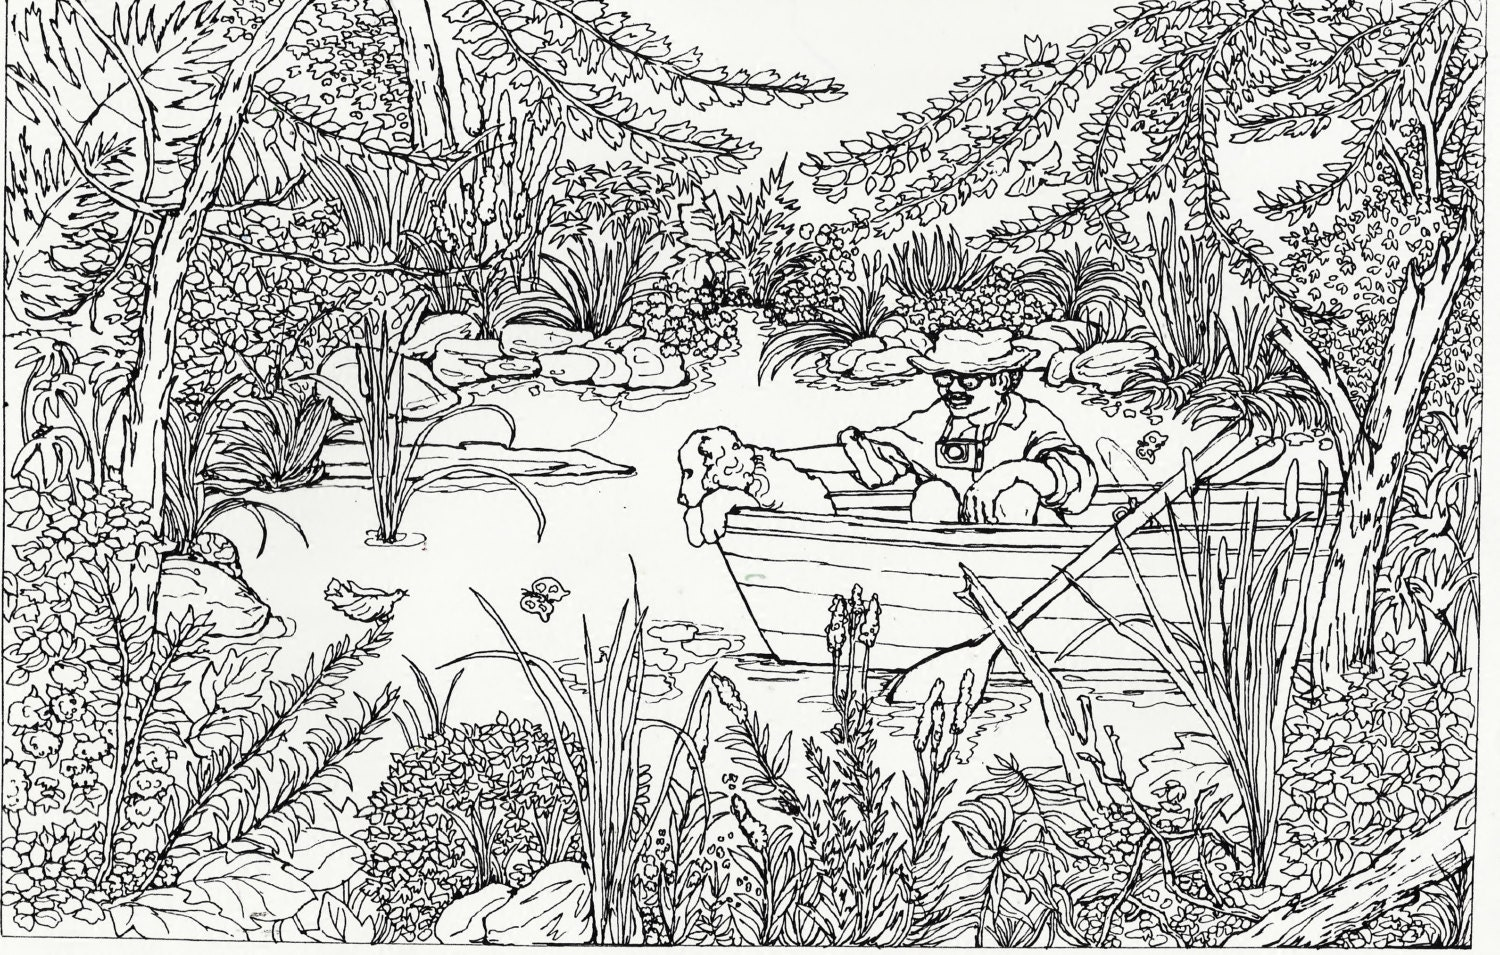 Outdoors coloring pages for adults